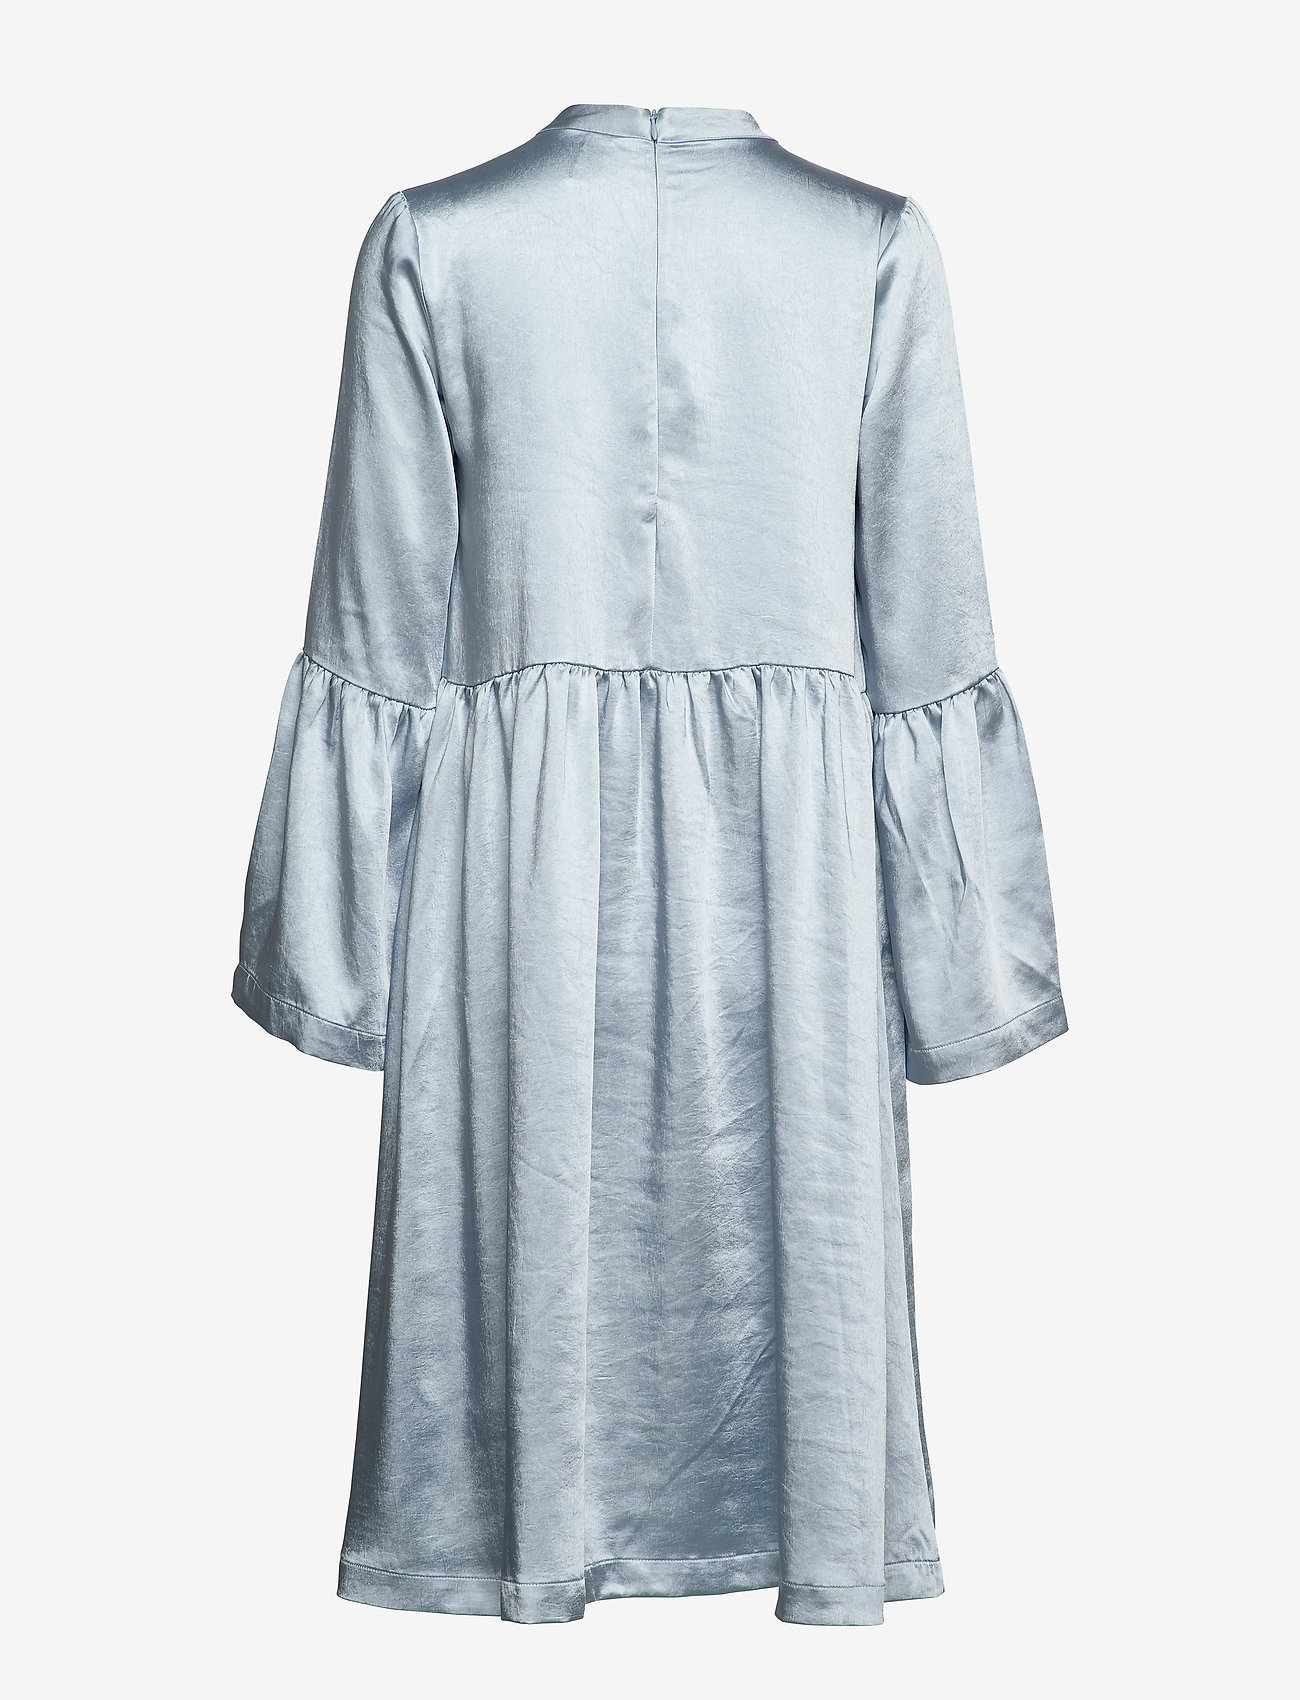 Pil Dress (Sky) (108 €) - Résumé 4KWQy